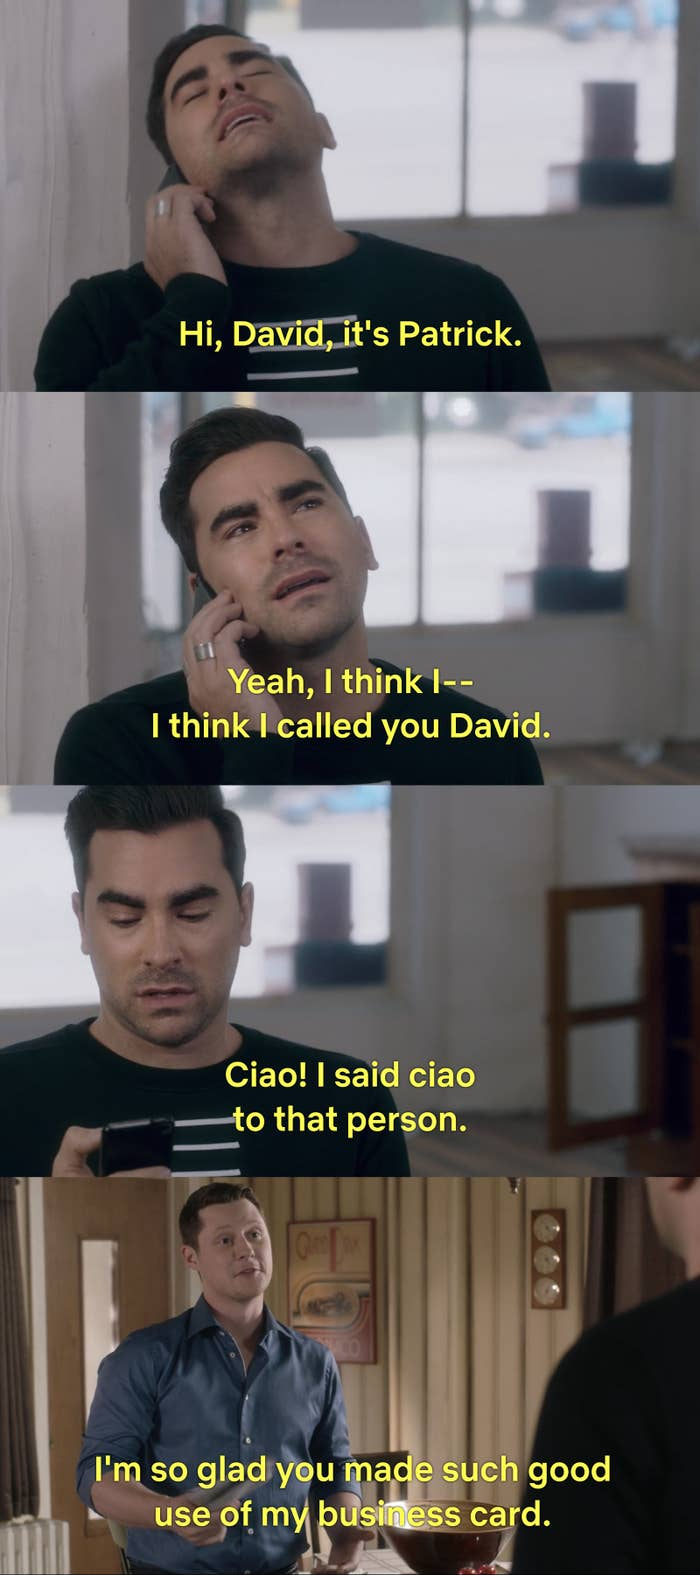 18 David And Patrick Schitt S Creek Moments That Made My Dead Heart Grow Three Sizes See more of david meme on facebook. 18 david and patrick schitt s creek